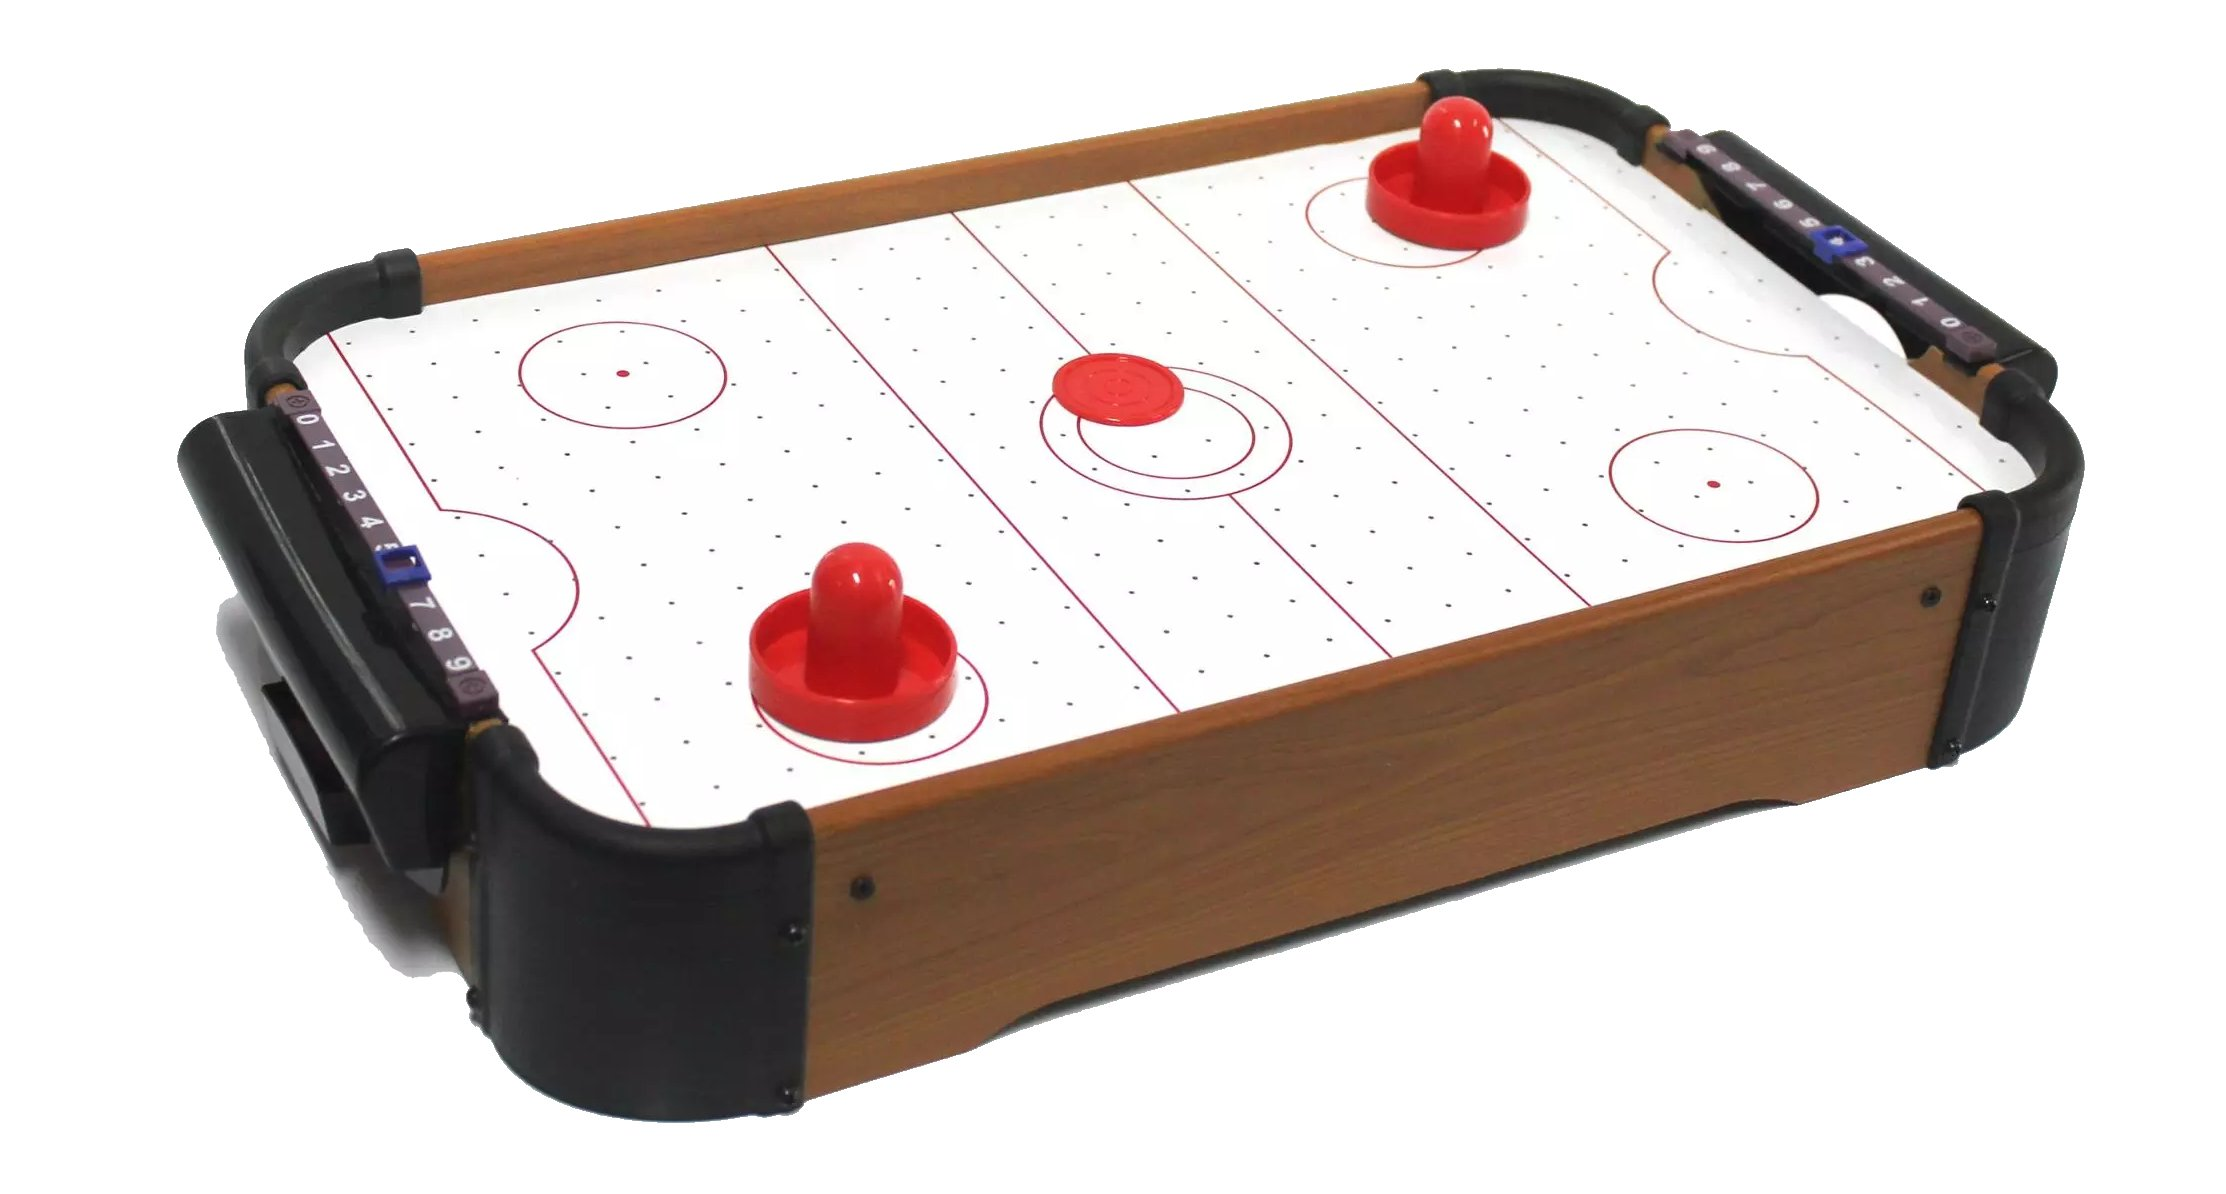 Table Top Air Hockey Battery Operated Arcade Game Retro Puck Pushers Players